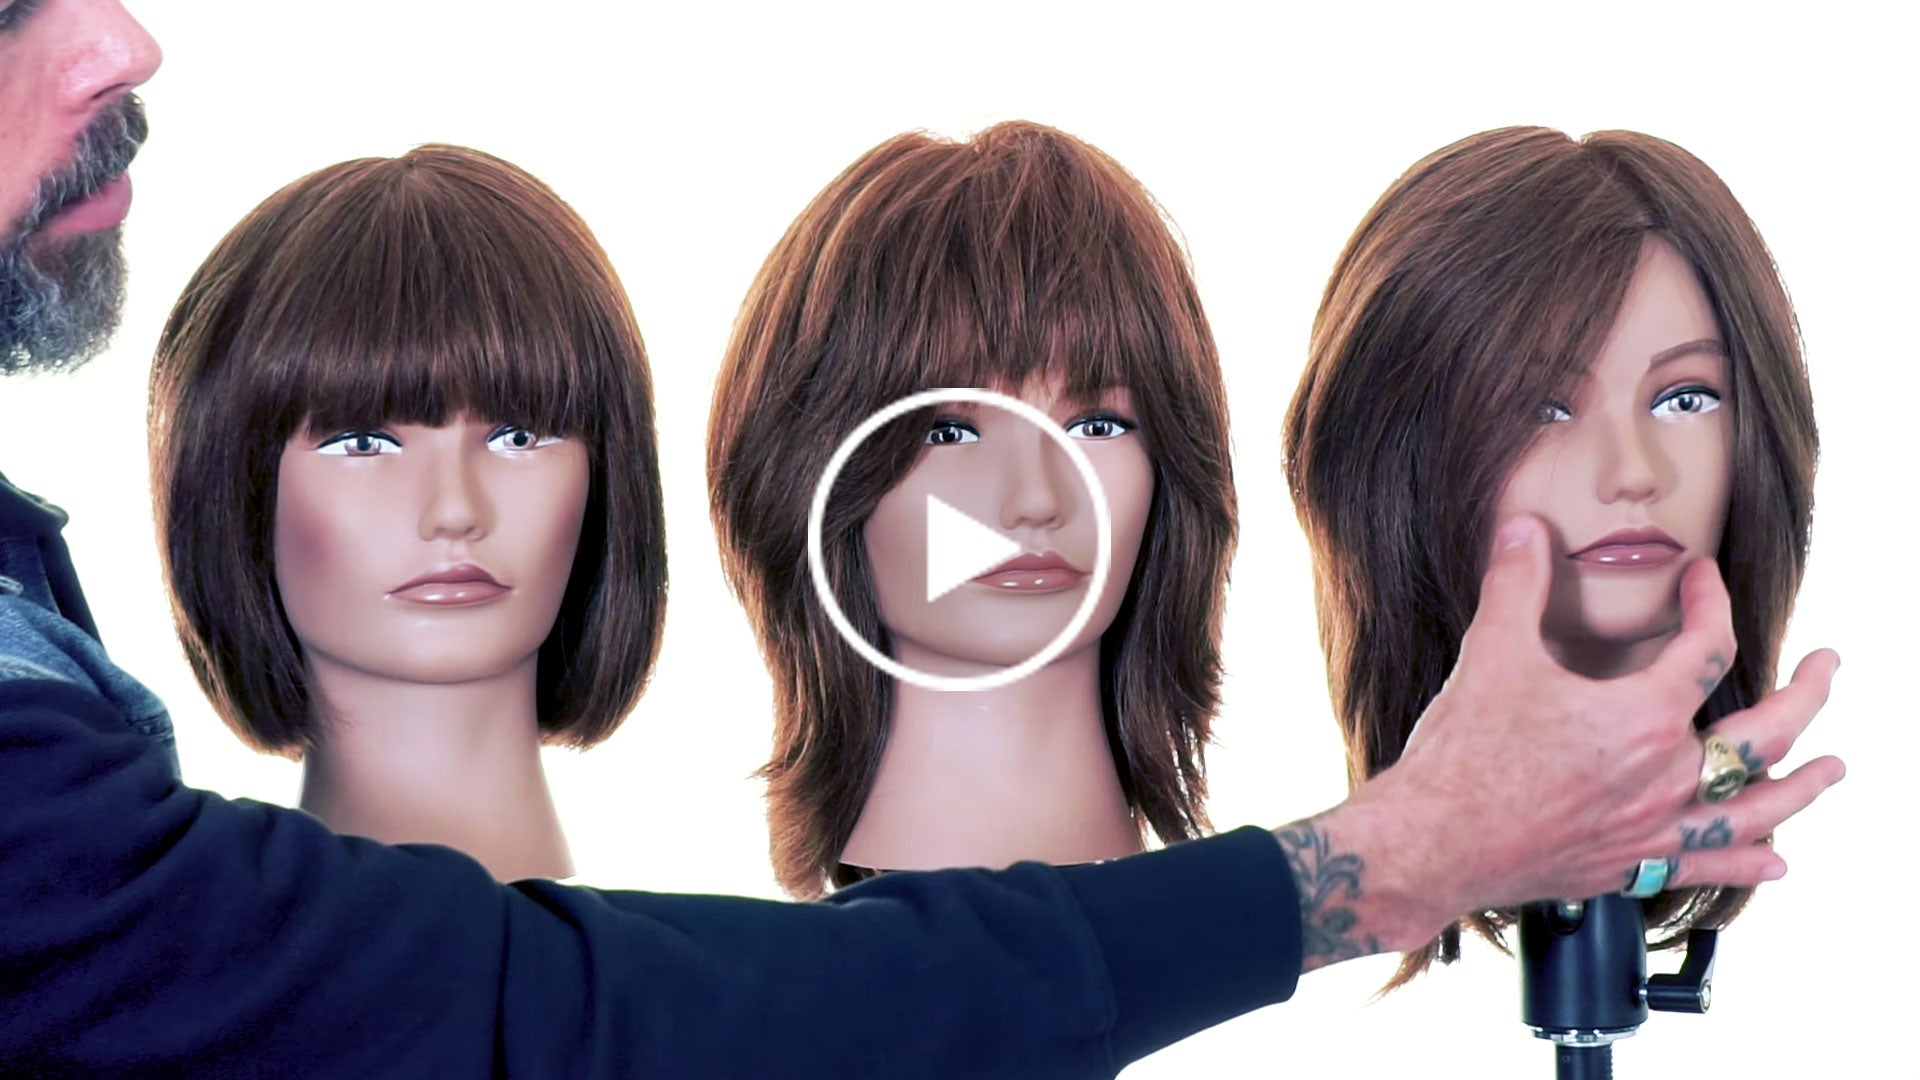 How to Create Hairstyles According to Face Shape - Working With Features